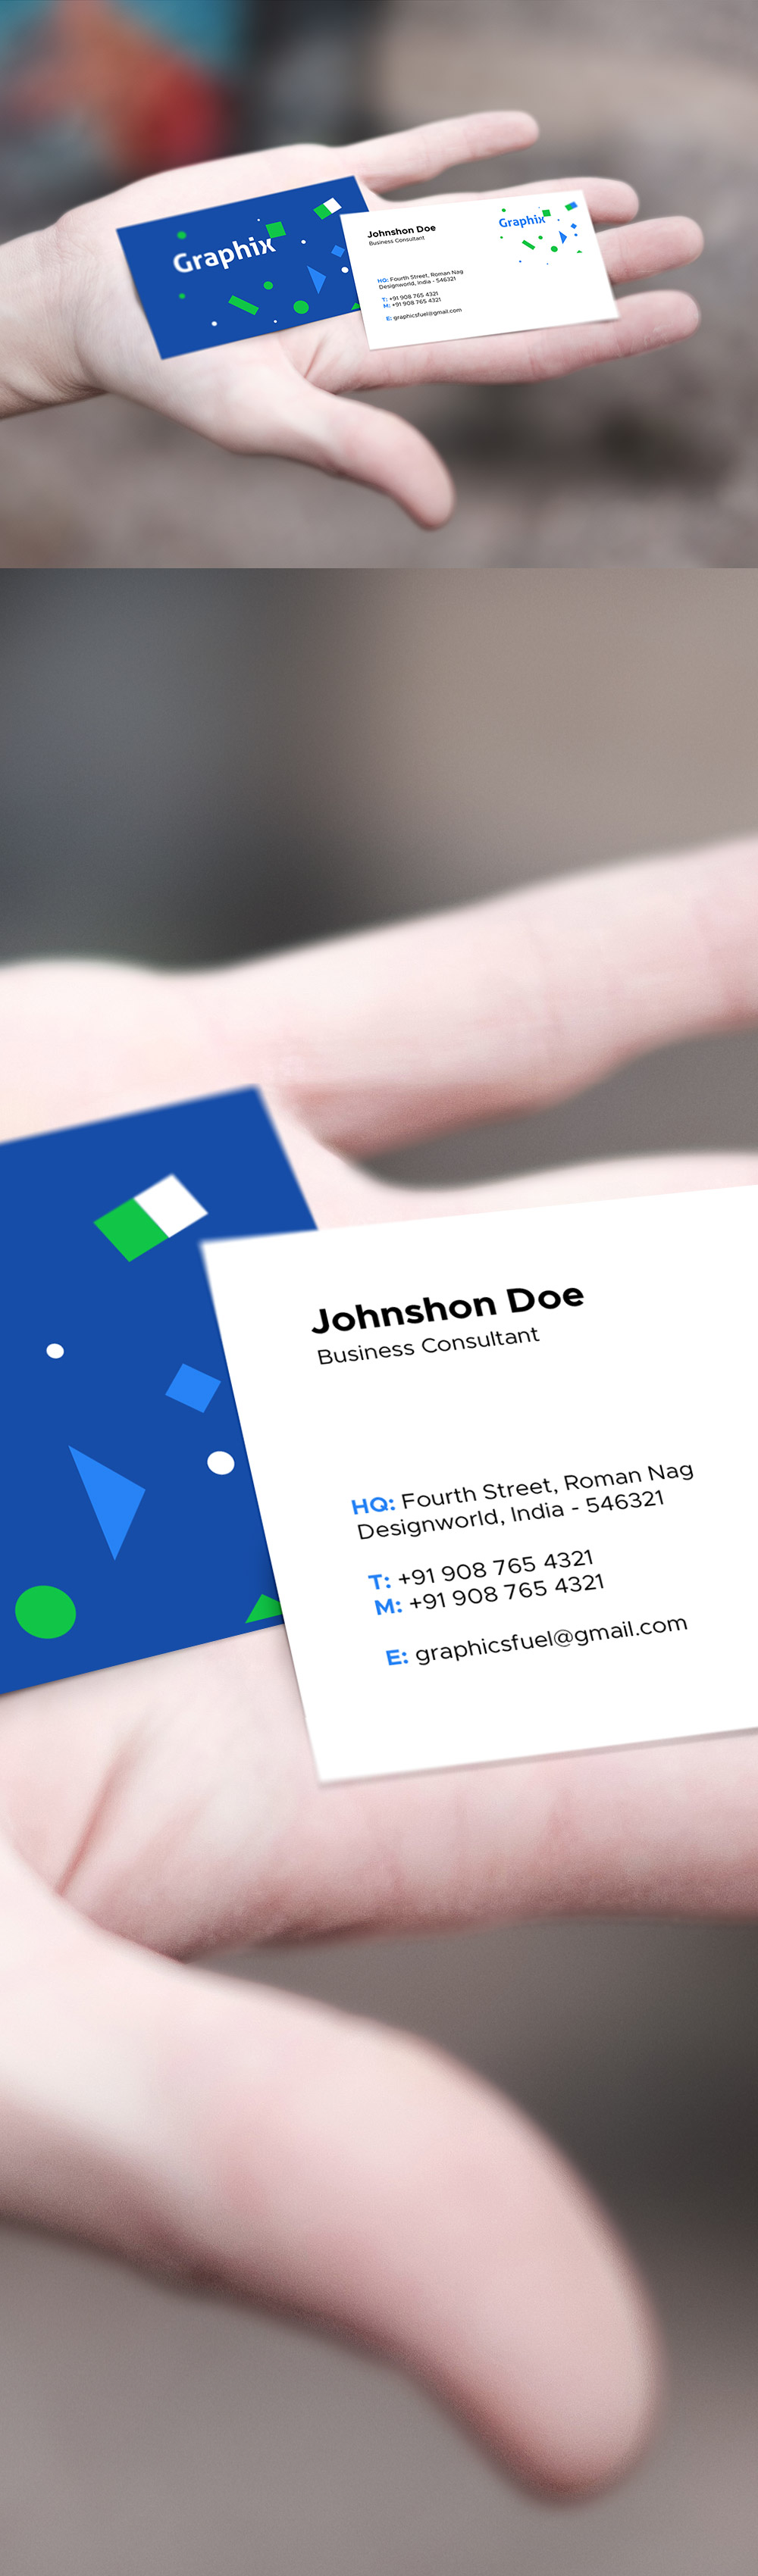 Business card in hand mockup psd free logo mockups pinterest free realistic business card design in hand mockup psd that comes handy to showcase your business card design alramifo Image collections